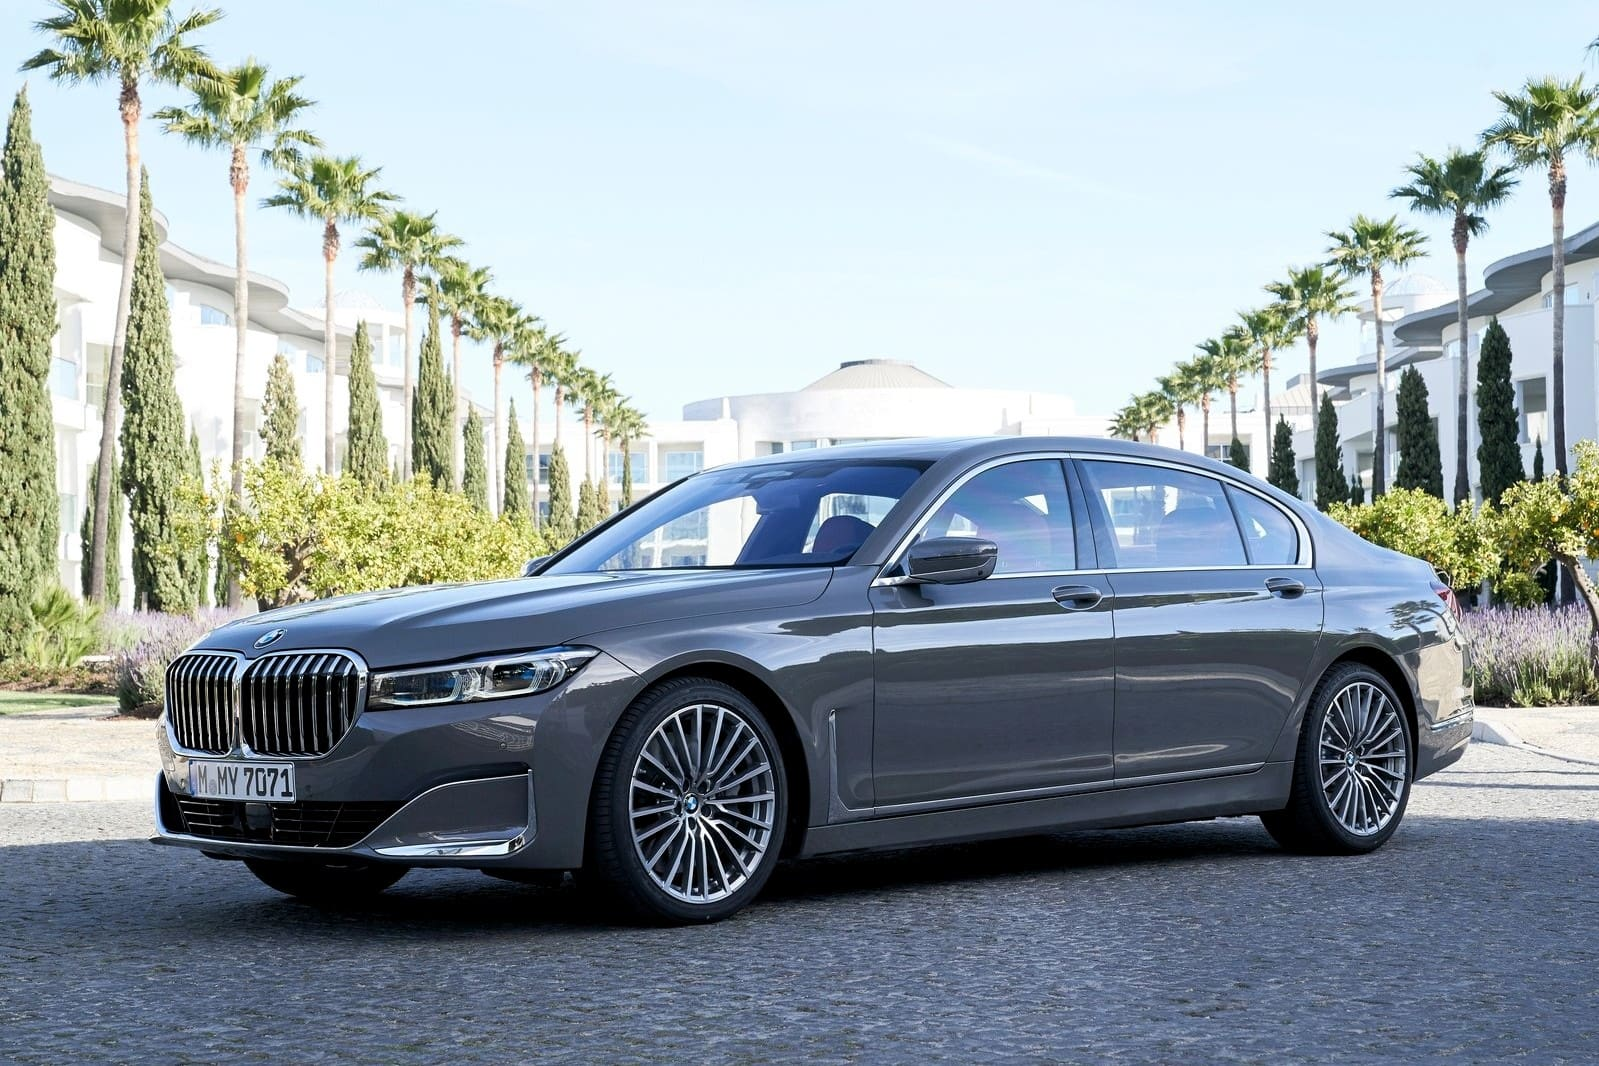 2019 BMW 7 Series Facelift Spied In India, Launch Soon